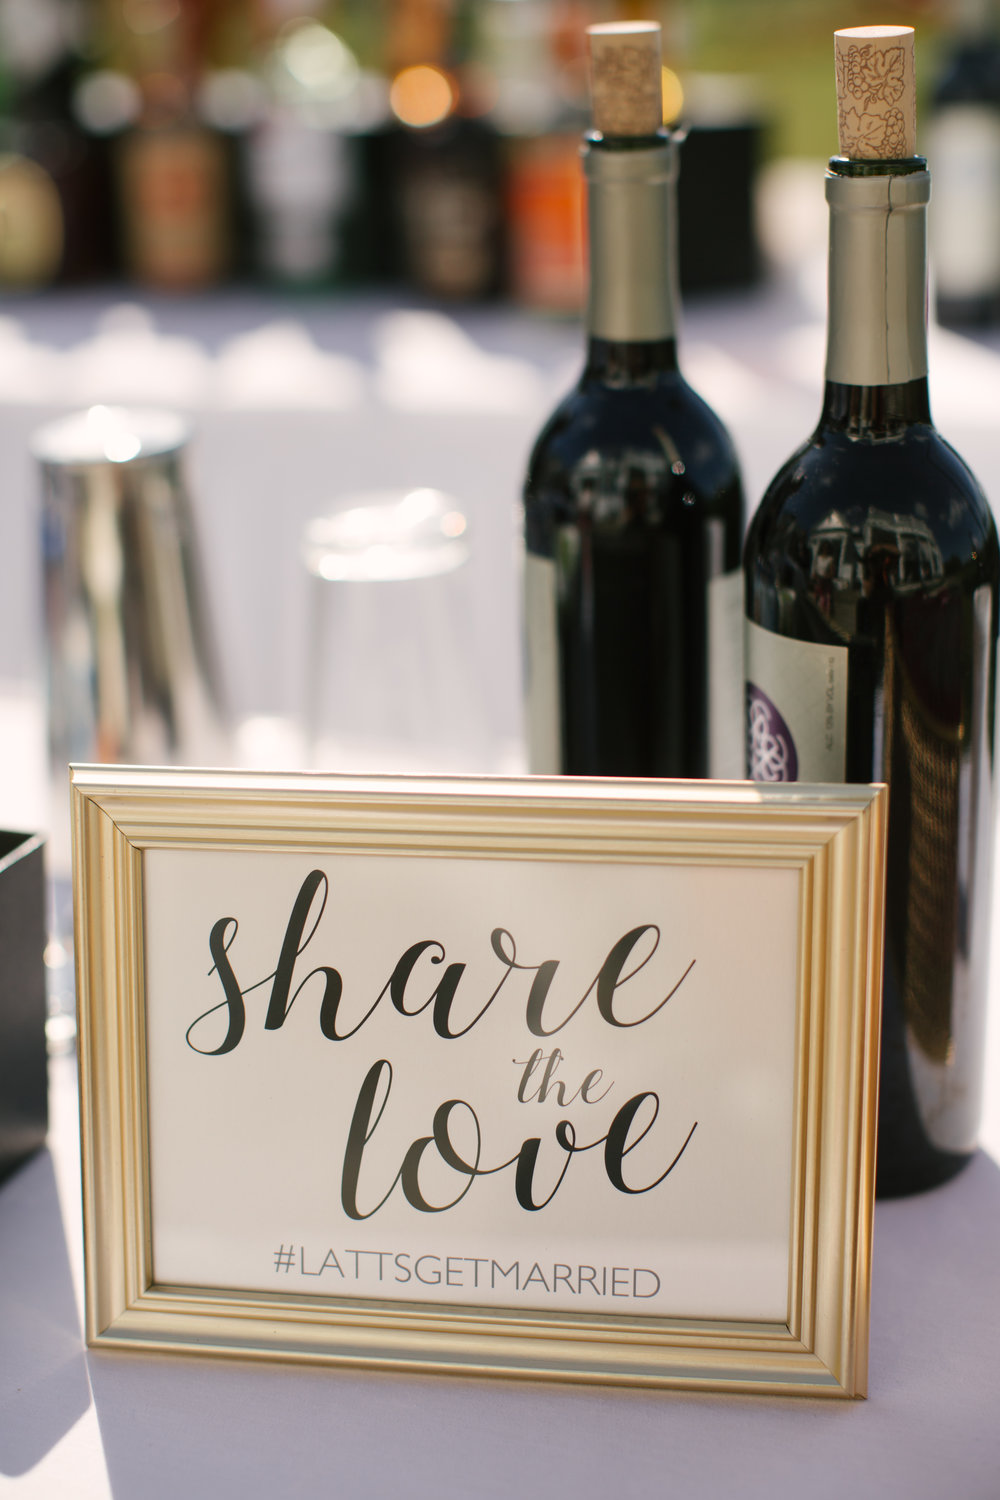 The couple's custom wedding hashtag in a gold framed sign on the bar.